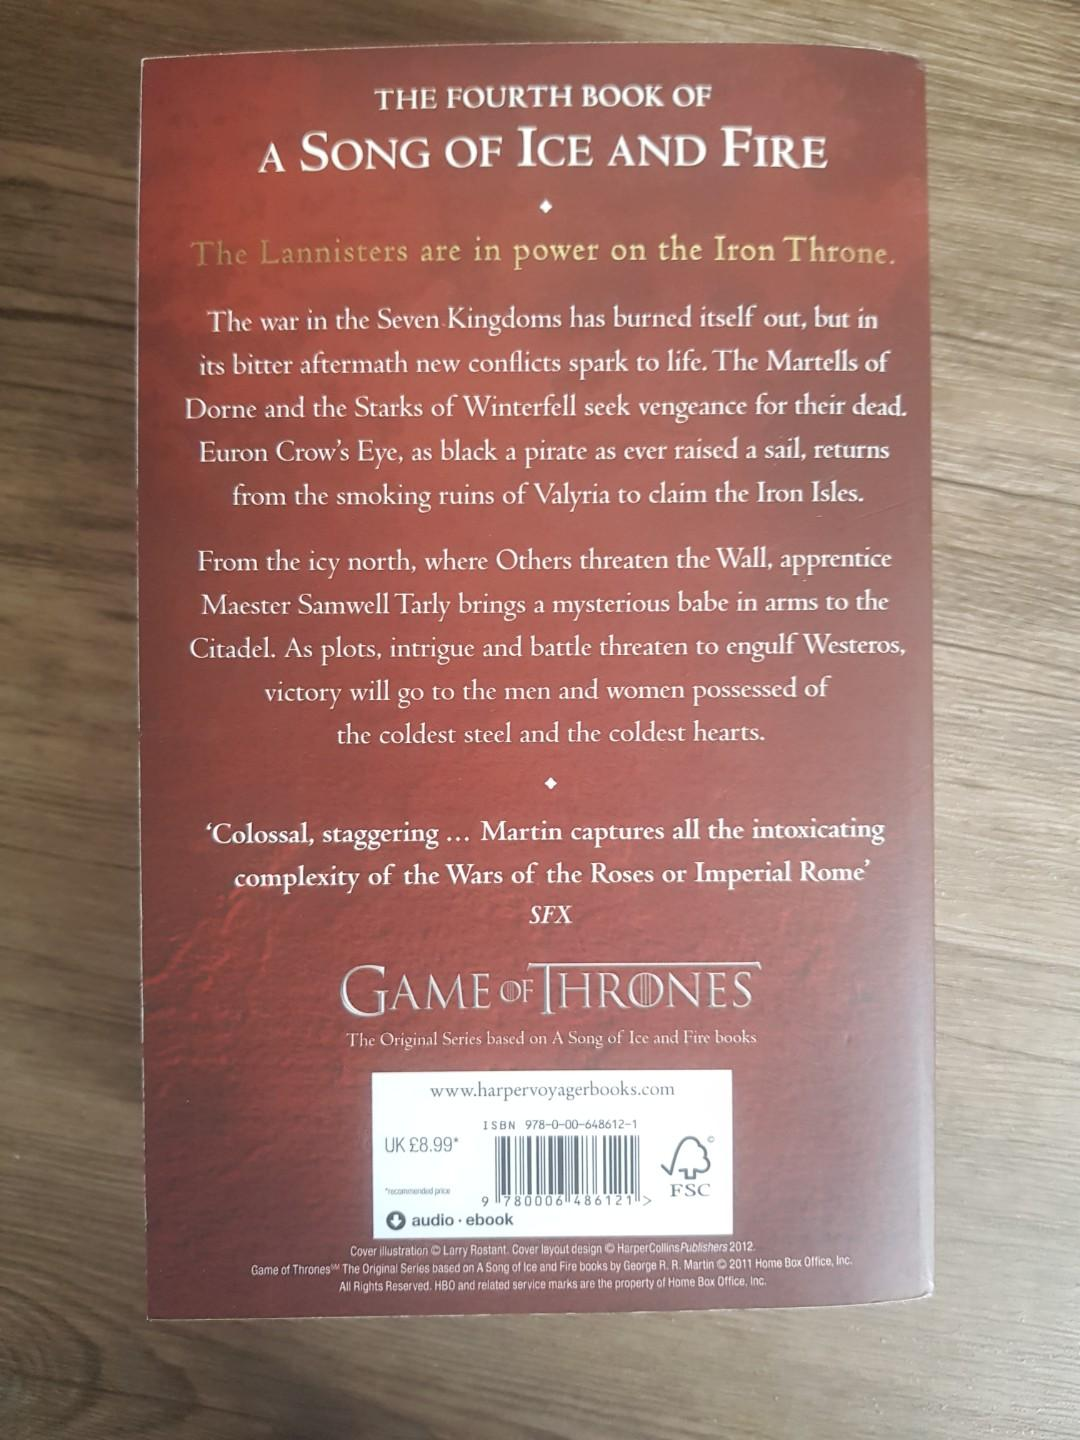 A Feast of Crows by George RR Martin (Game of Thrones)